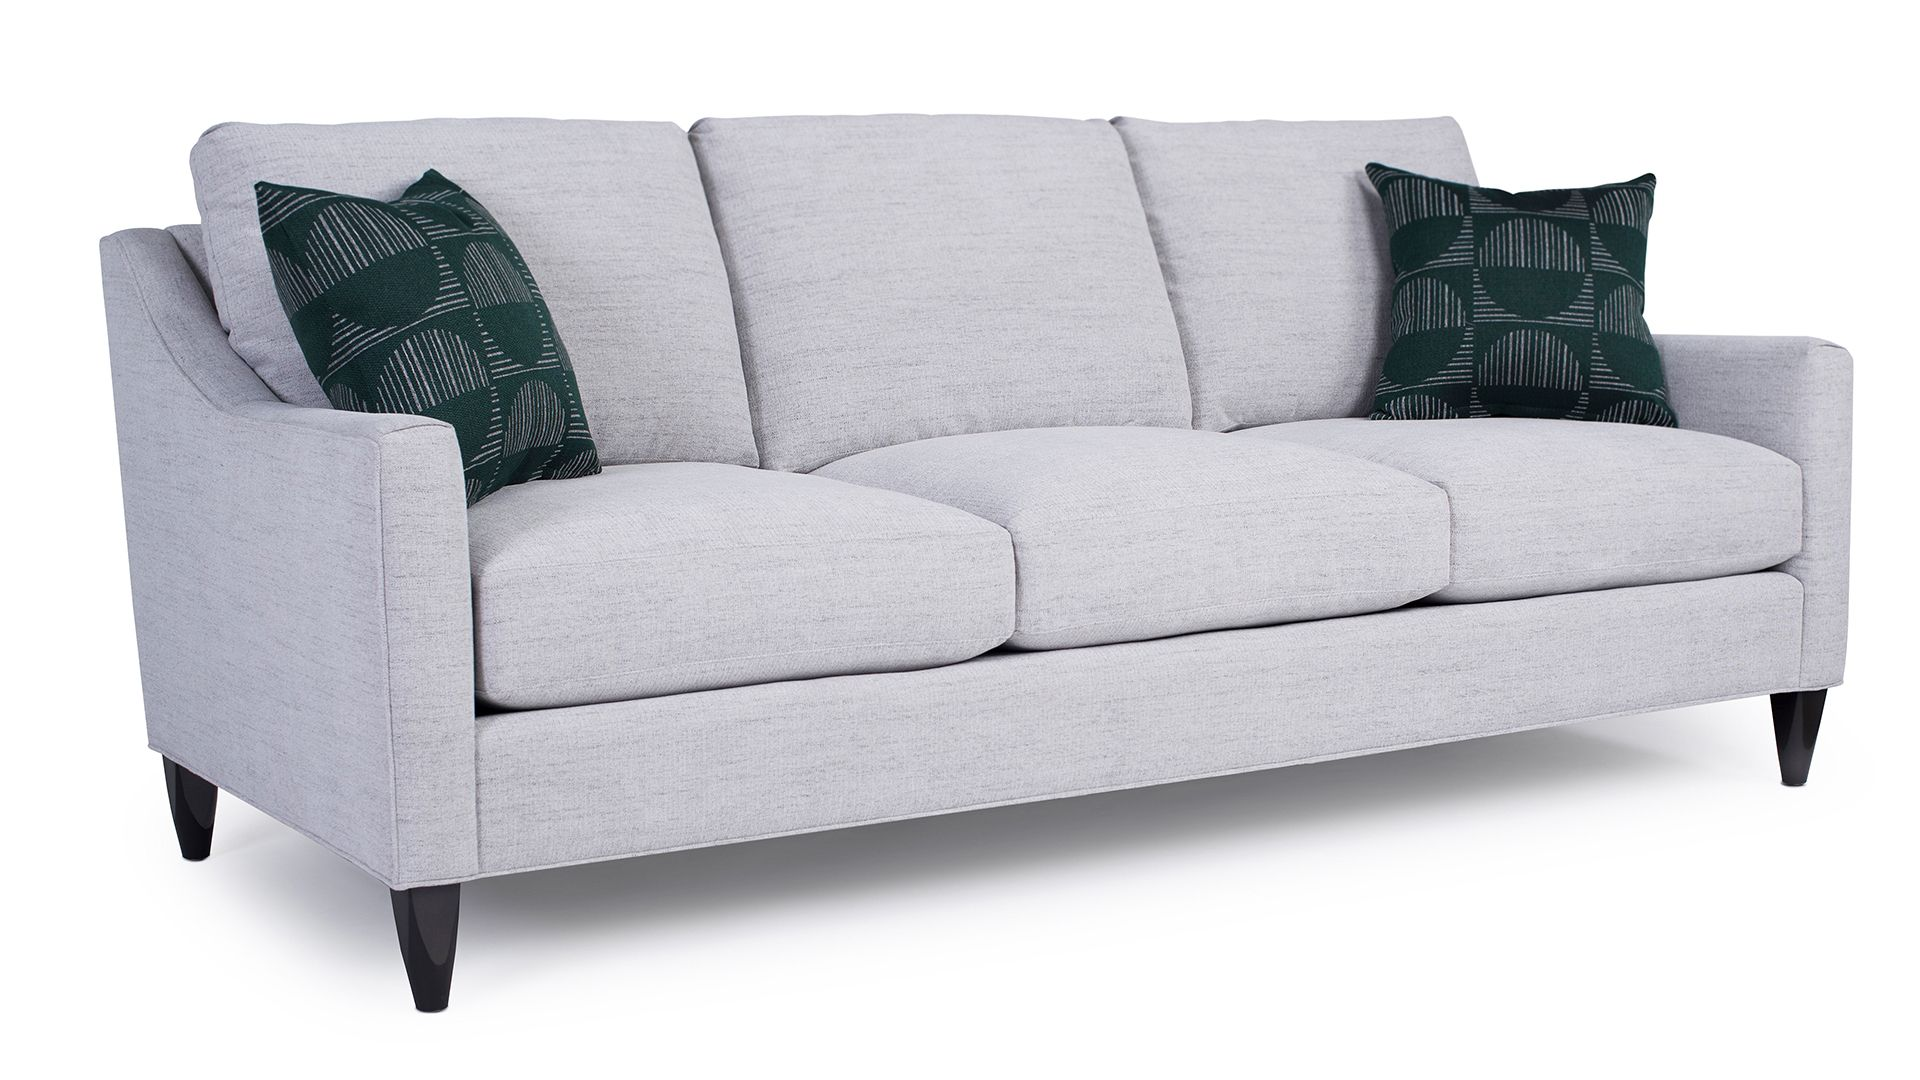 Style Details Smith Brothers Furniture In 2021 Living Room Sofa Cushions On Sofa Furniture